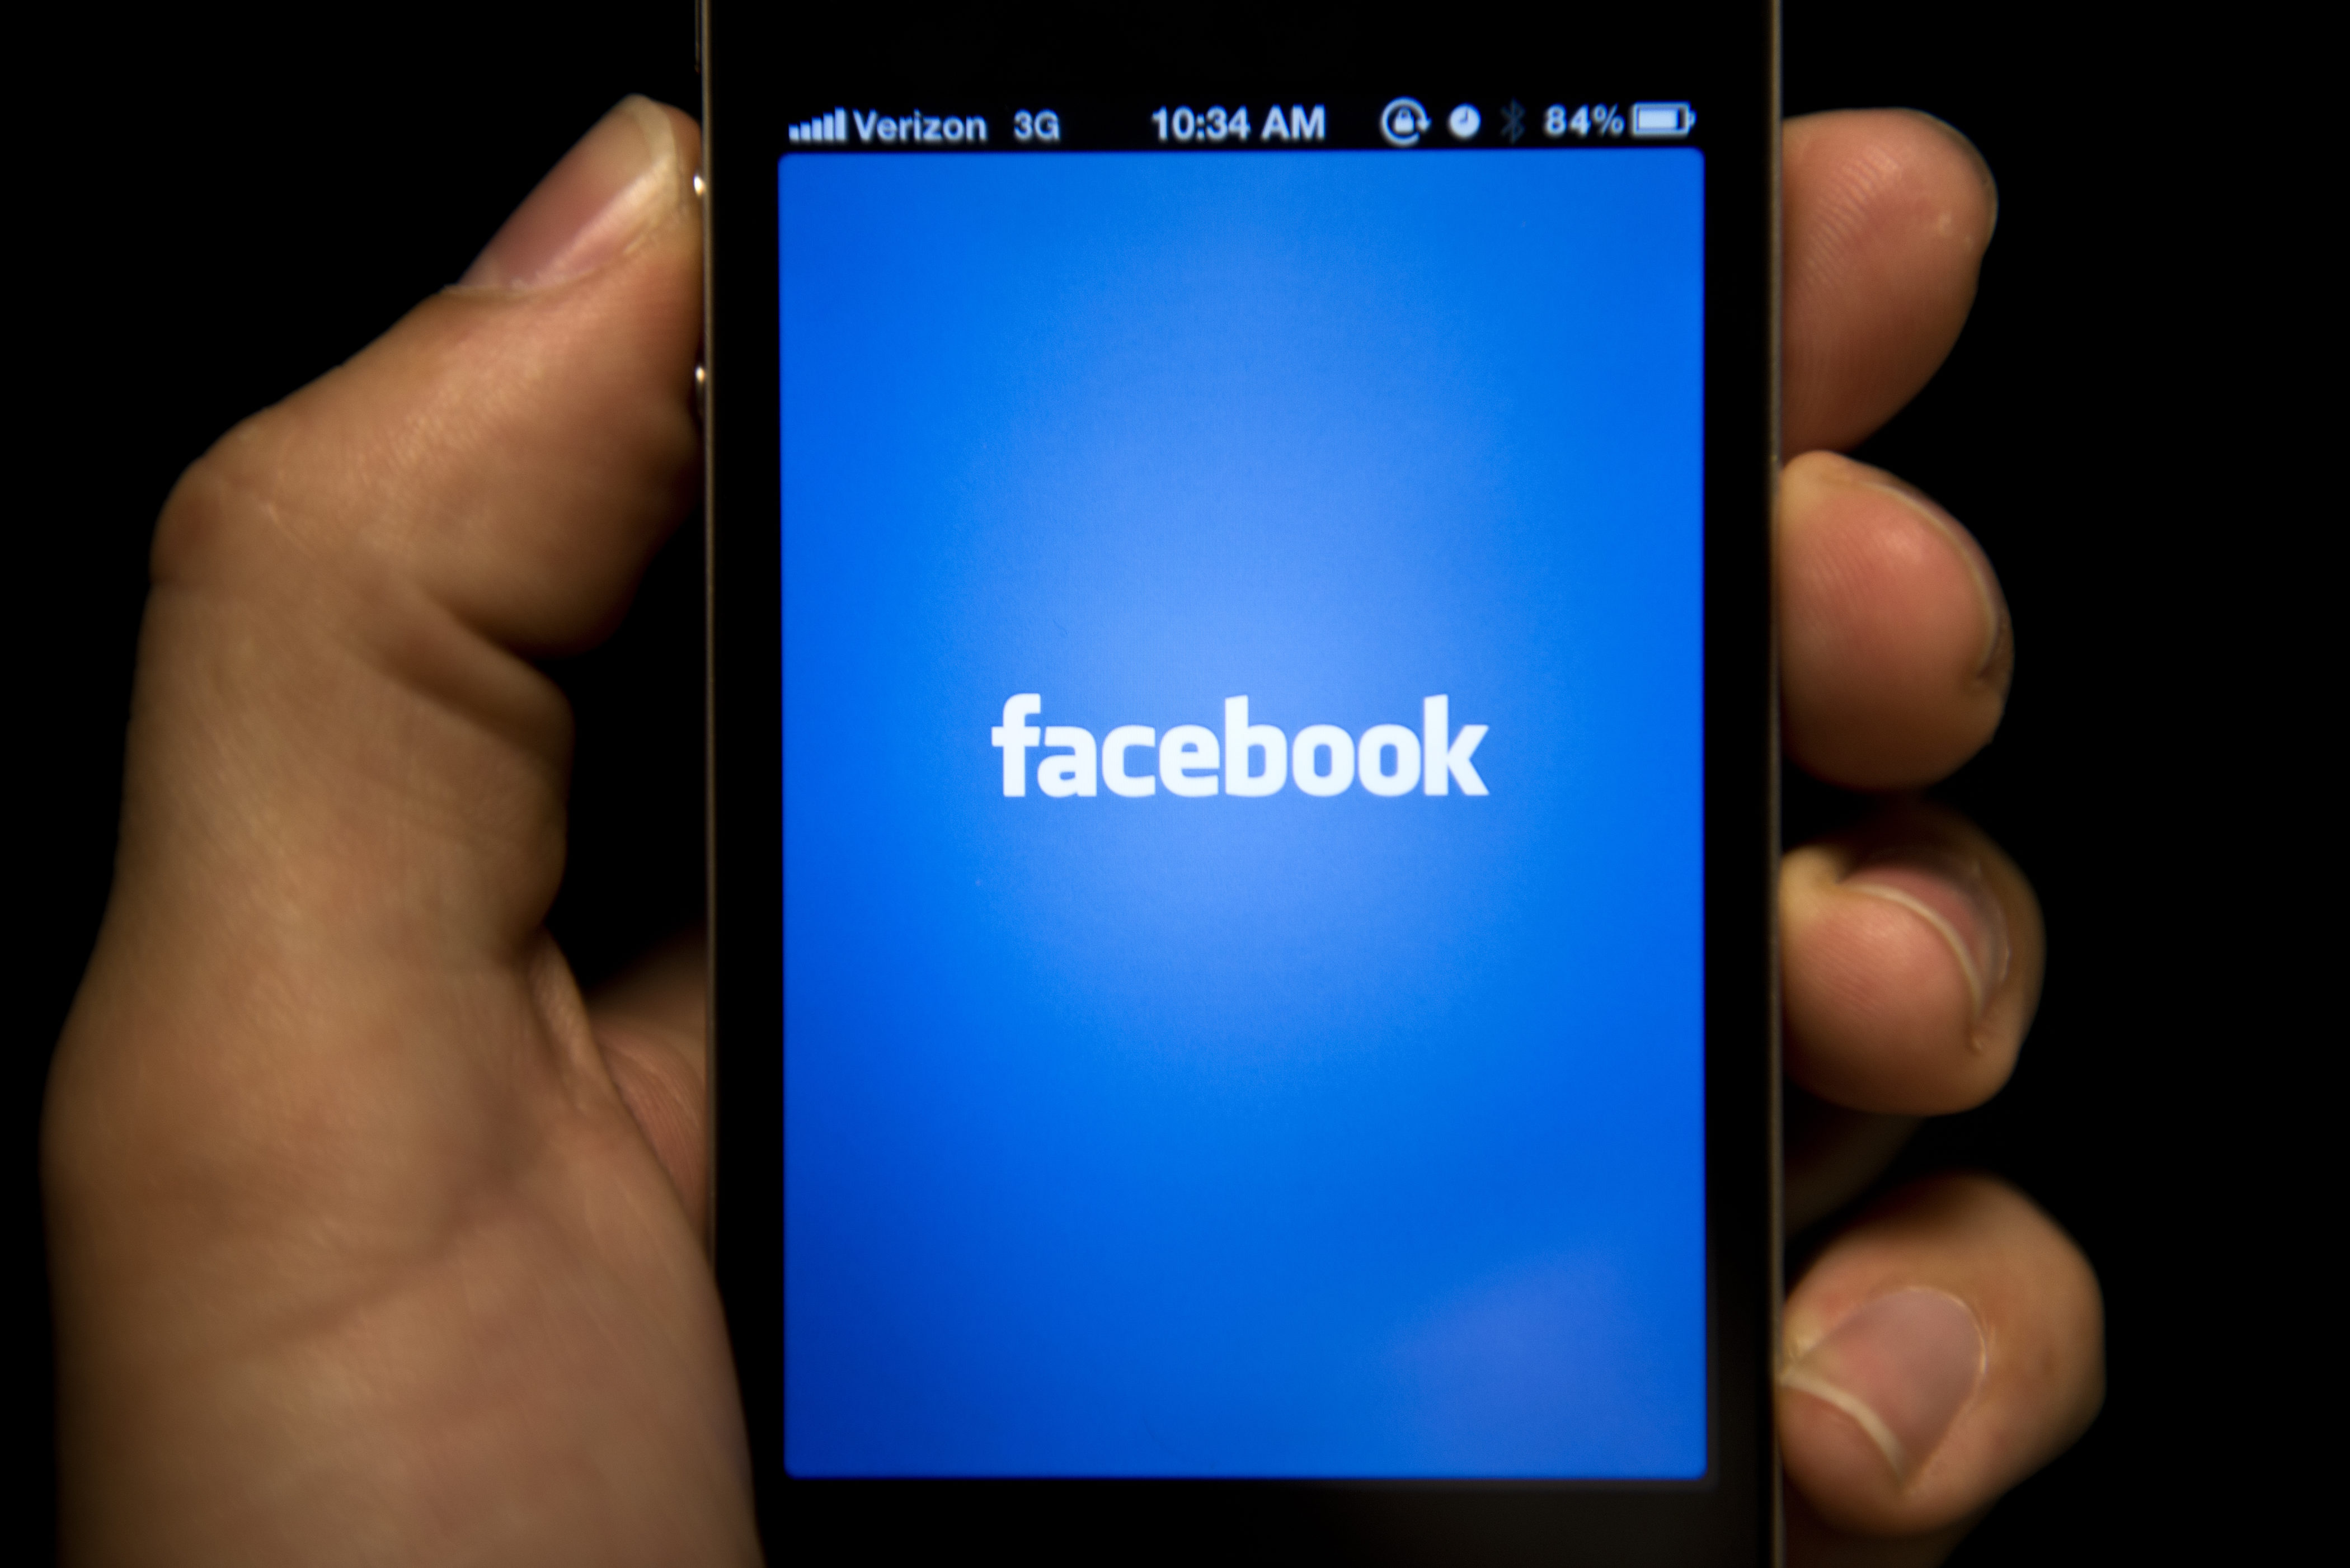 Facebook users: Beware of autoplay data charges - CBS News